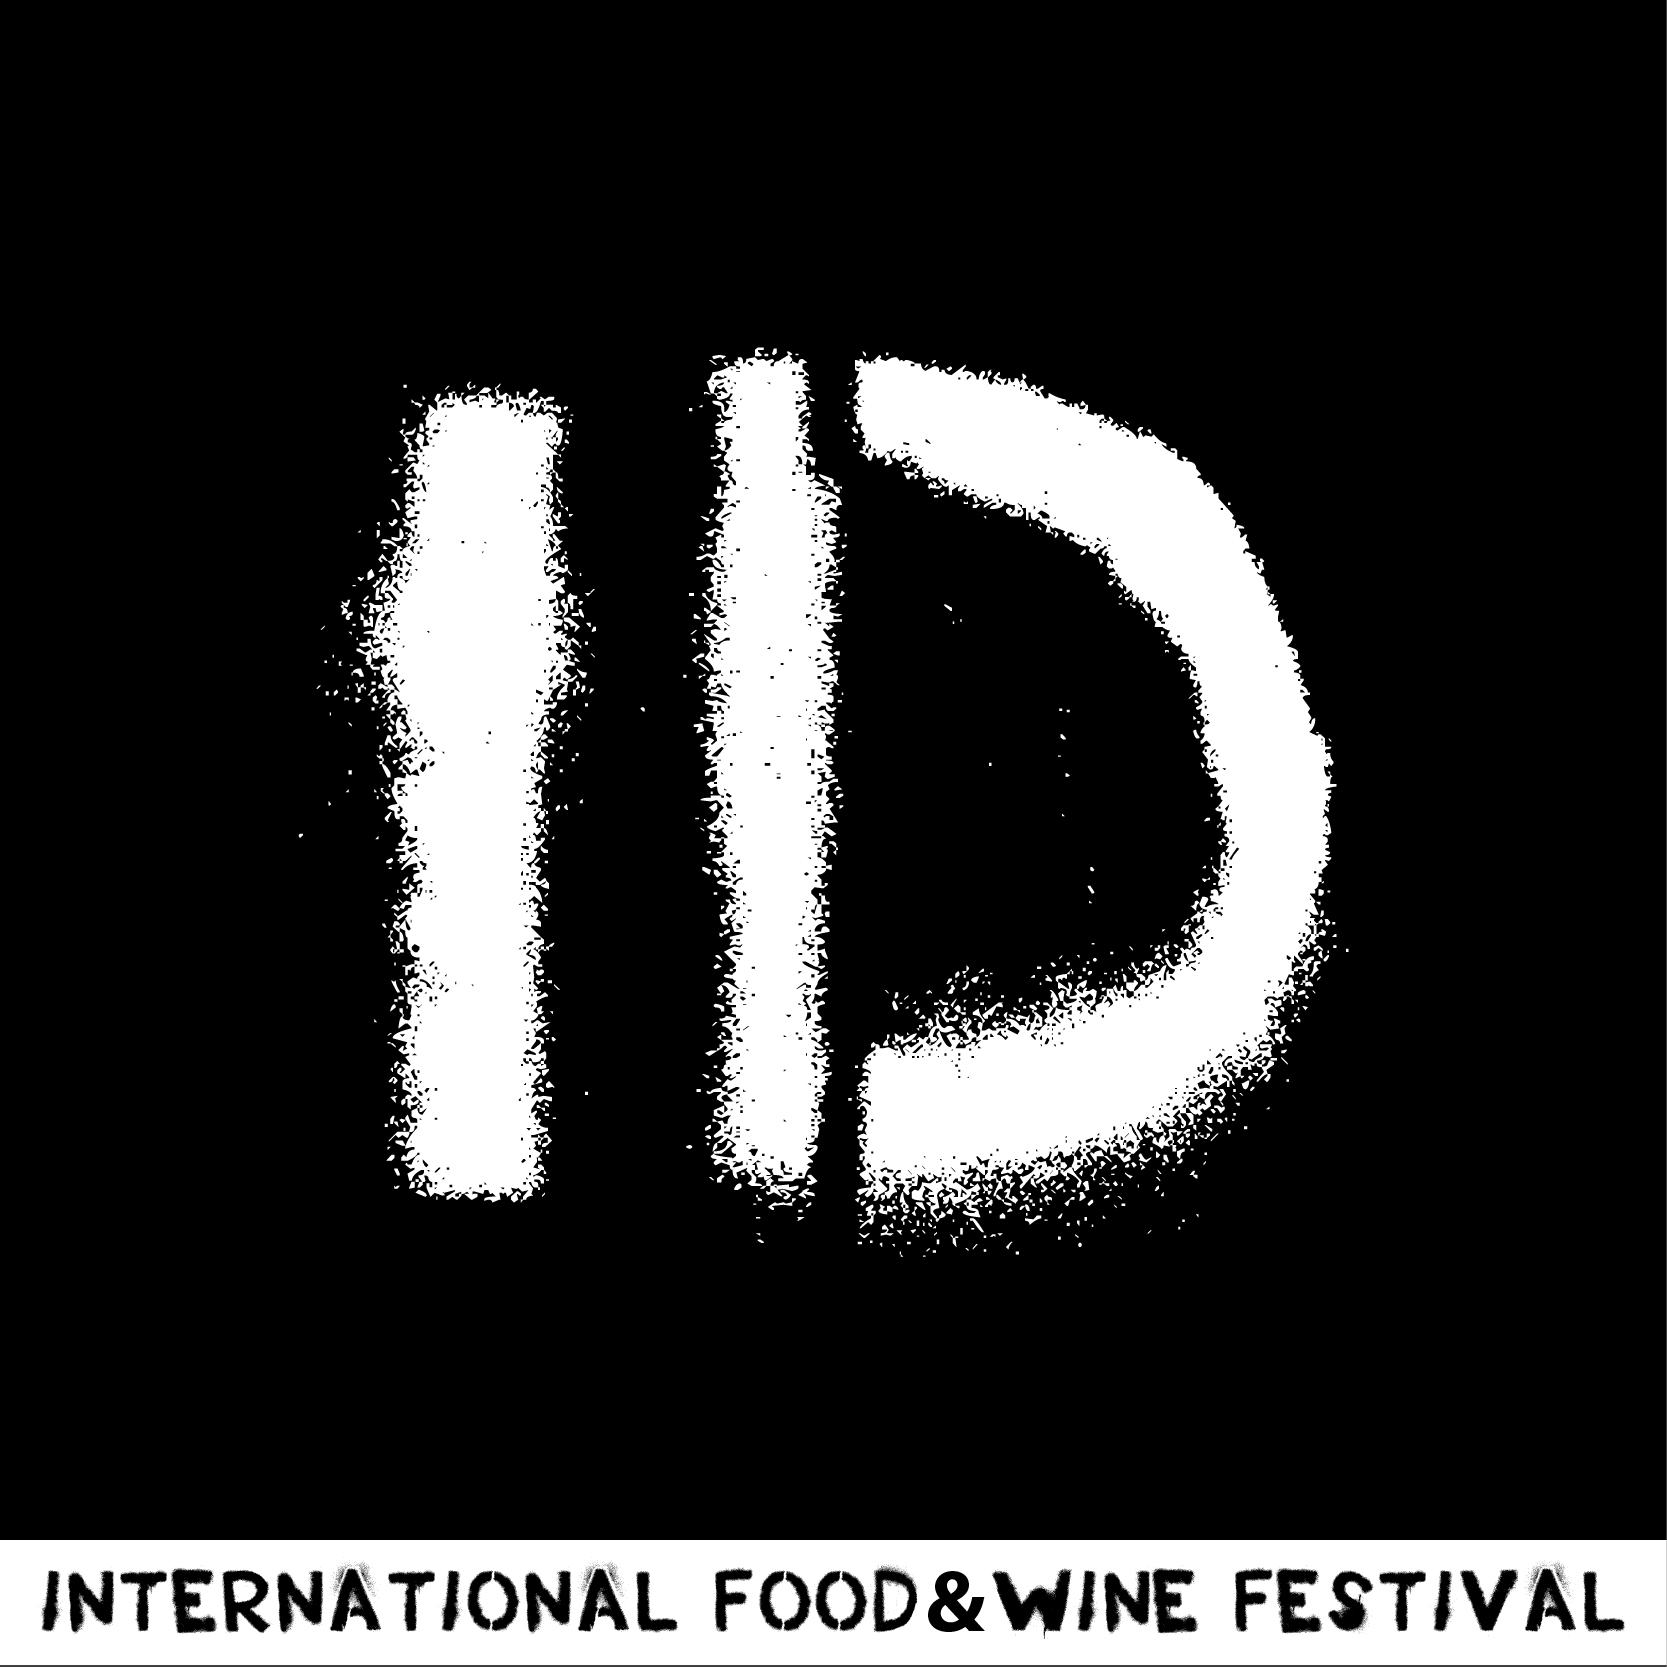 Identitaria – Food&Wine Photo Festival - logo